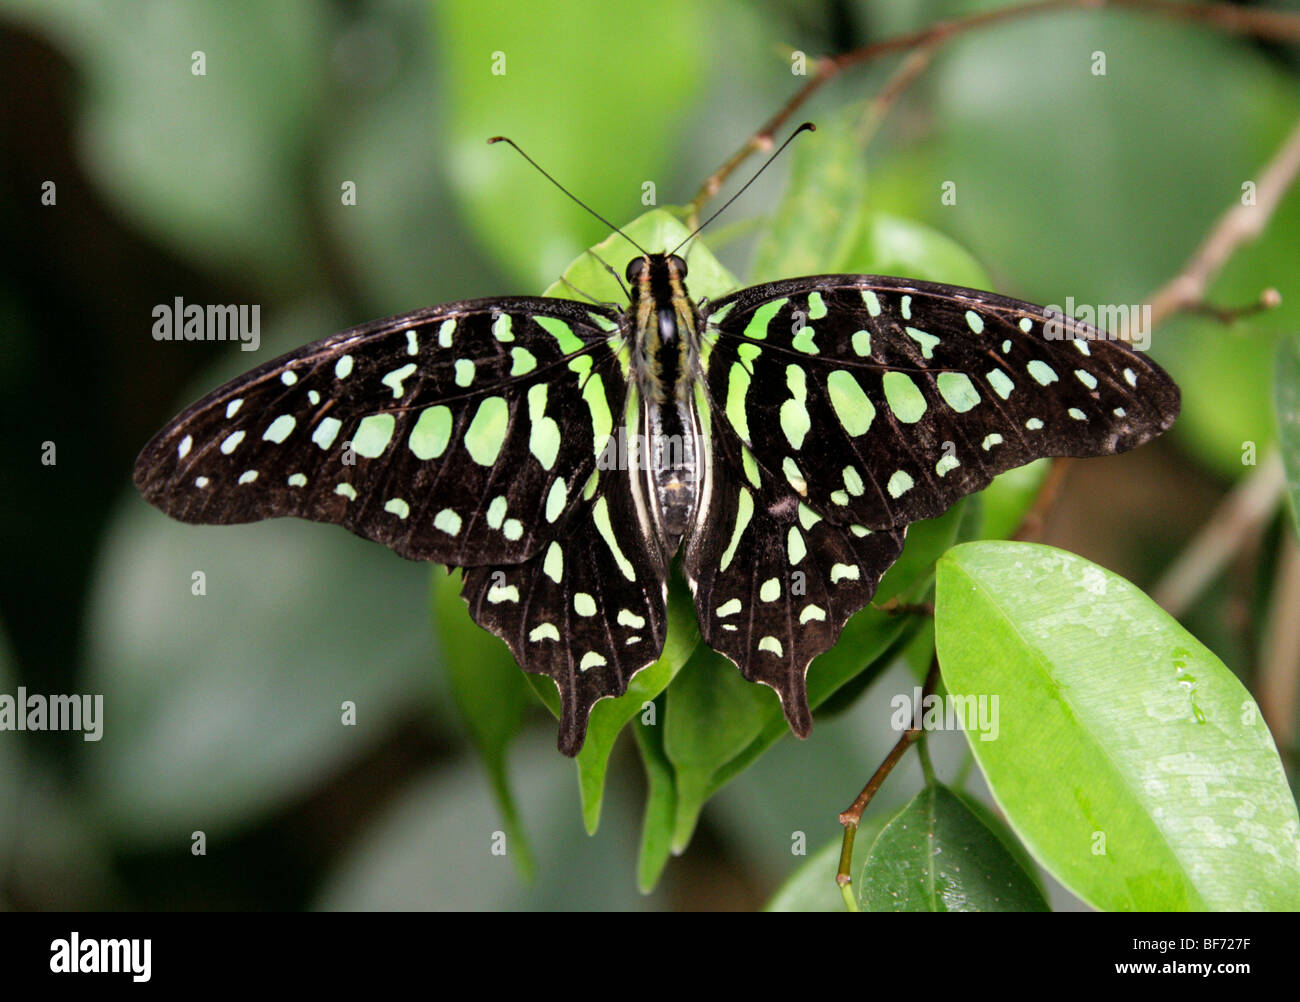 Tailed Jay or Green-spotted Triangle Butterfly, Graphium agamemnon, Papilionidae India, Malay Peninsula, East China, - Stock Image